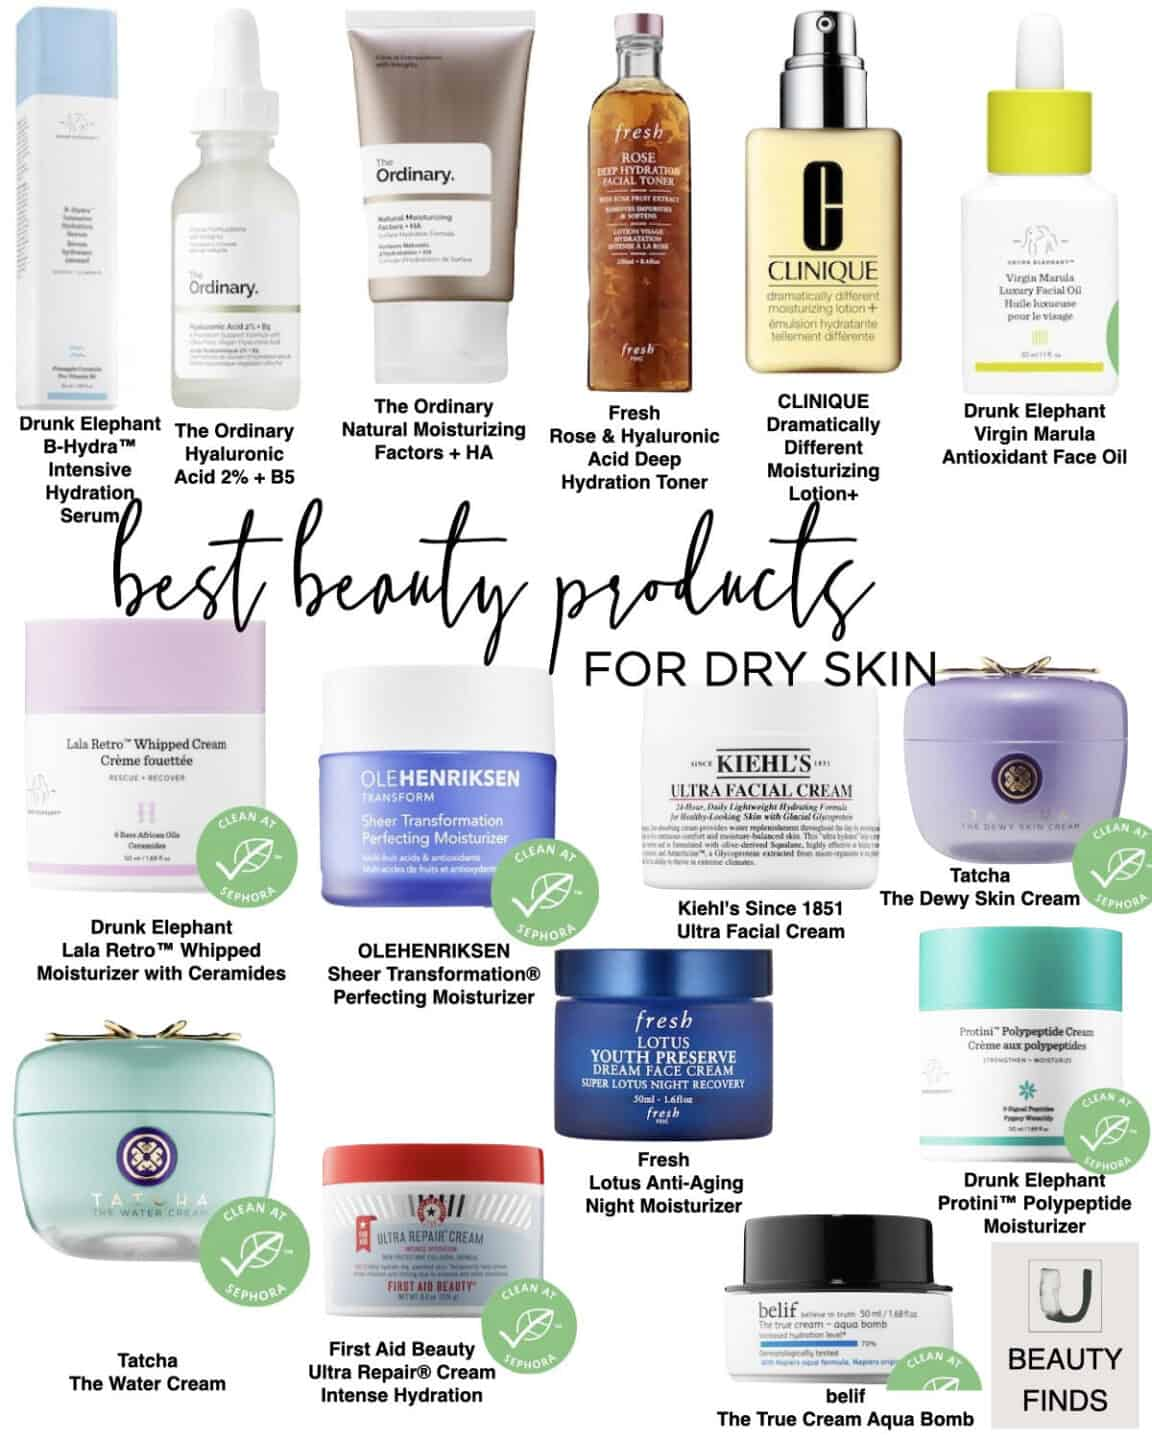 Best Selling Skincare Products for Dry Skin